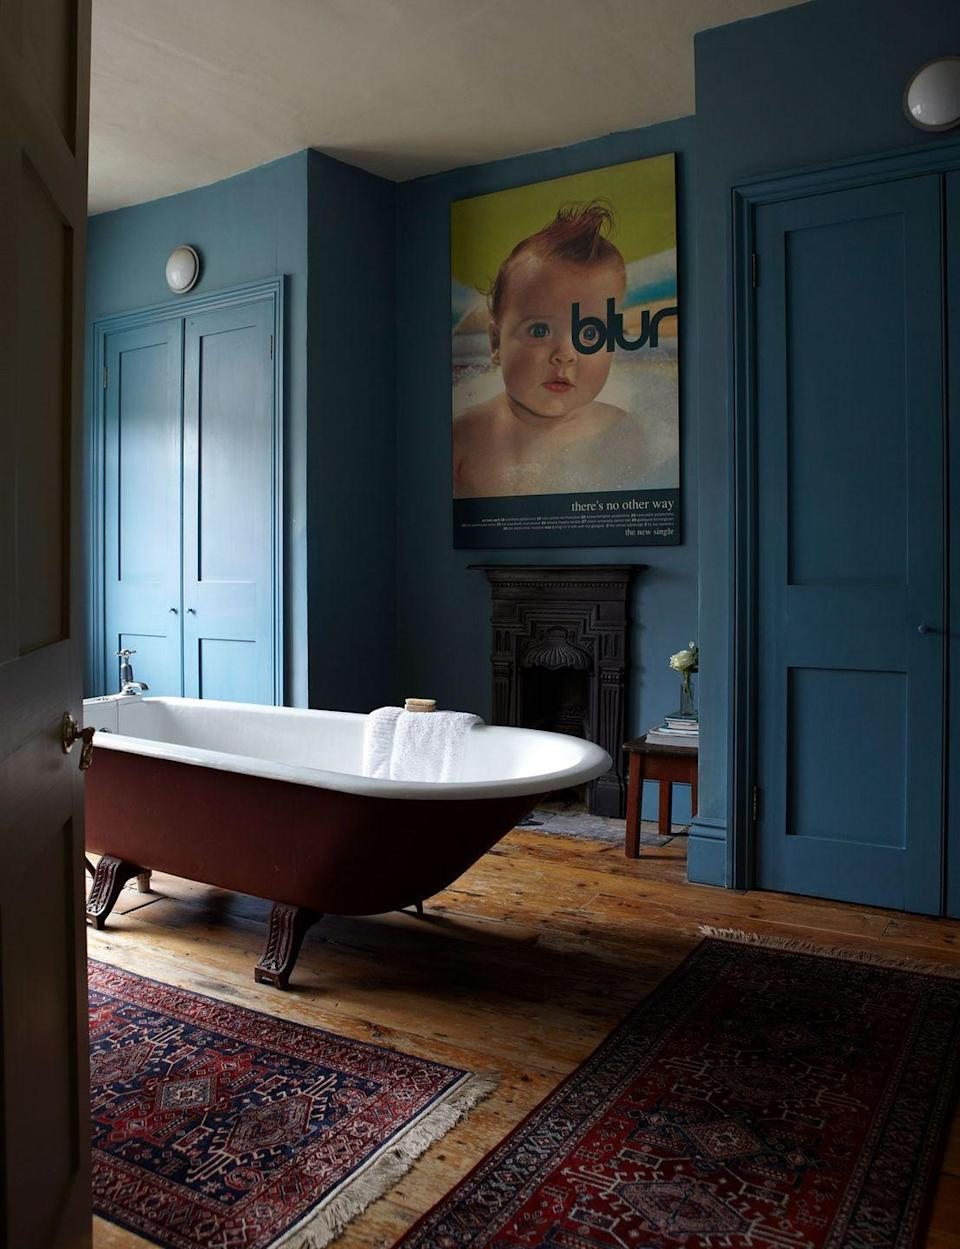 """<p>A jewel-toned blue and deep burgundy colour combination brings a richness and sense of luxury to a room. The splash of chartreuse in the form of a modern graphic poster, and the natural wooden flooring, prevent this scheme from becoming too heavy. <br></p><p>Pictured: <a href=""""https://go.redirectingat.com?id=127X1599956&url=https%3A%2F%2Fwww.farrow-ball.com%2Fpaint-colours%2Fstone-blue&sref=https%3A%2F%2Fwww.redonline.co.uk%2Finteriors%2Feasy-to-steal-ideas%2Fg37326104%2Fcolour-combinations%2F"""" rel=""""nofollow noopener"""" target=""""_blank"""" data-ylk=""""slk:Stone Blue by Farrow & Ball"""" class=""""link rapid-noclick-resp"""">Stone Blue by Farrow & Ball</a></p>"""